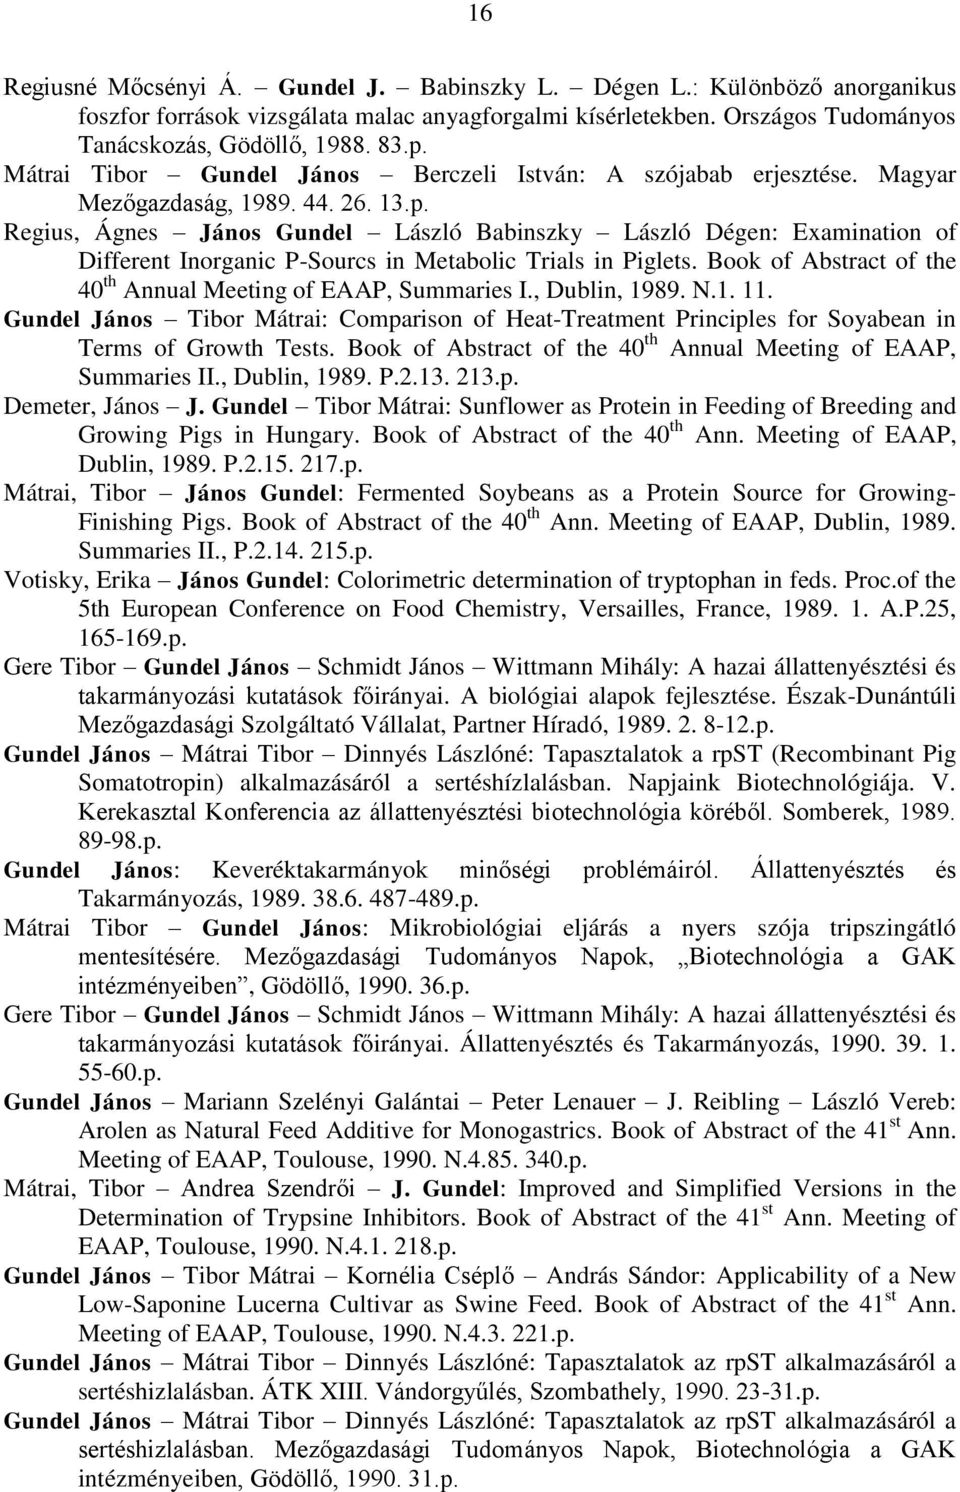 Regius, Ágnes János Gundel László Babinszky László Dégen: Examination of Different Inorganic P-Sourcs in Metabolic Trials in Piglets. Book of Abstract of the 40 th Annual Meeting of EAAP, Summaries I.